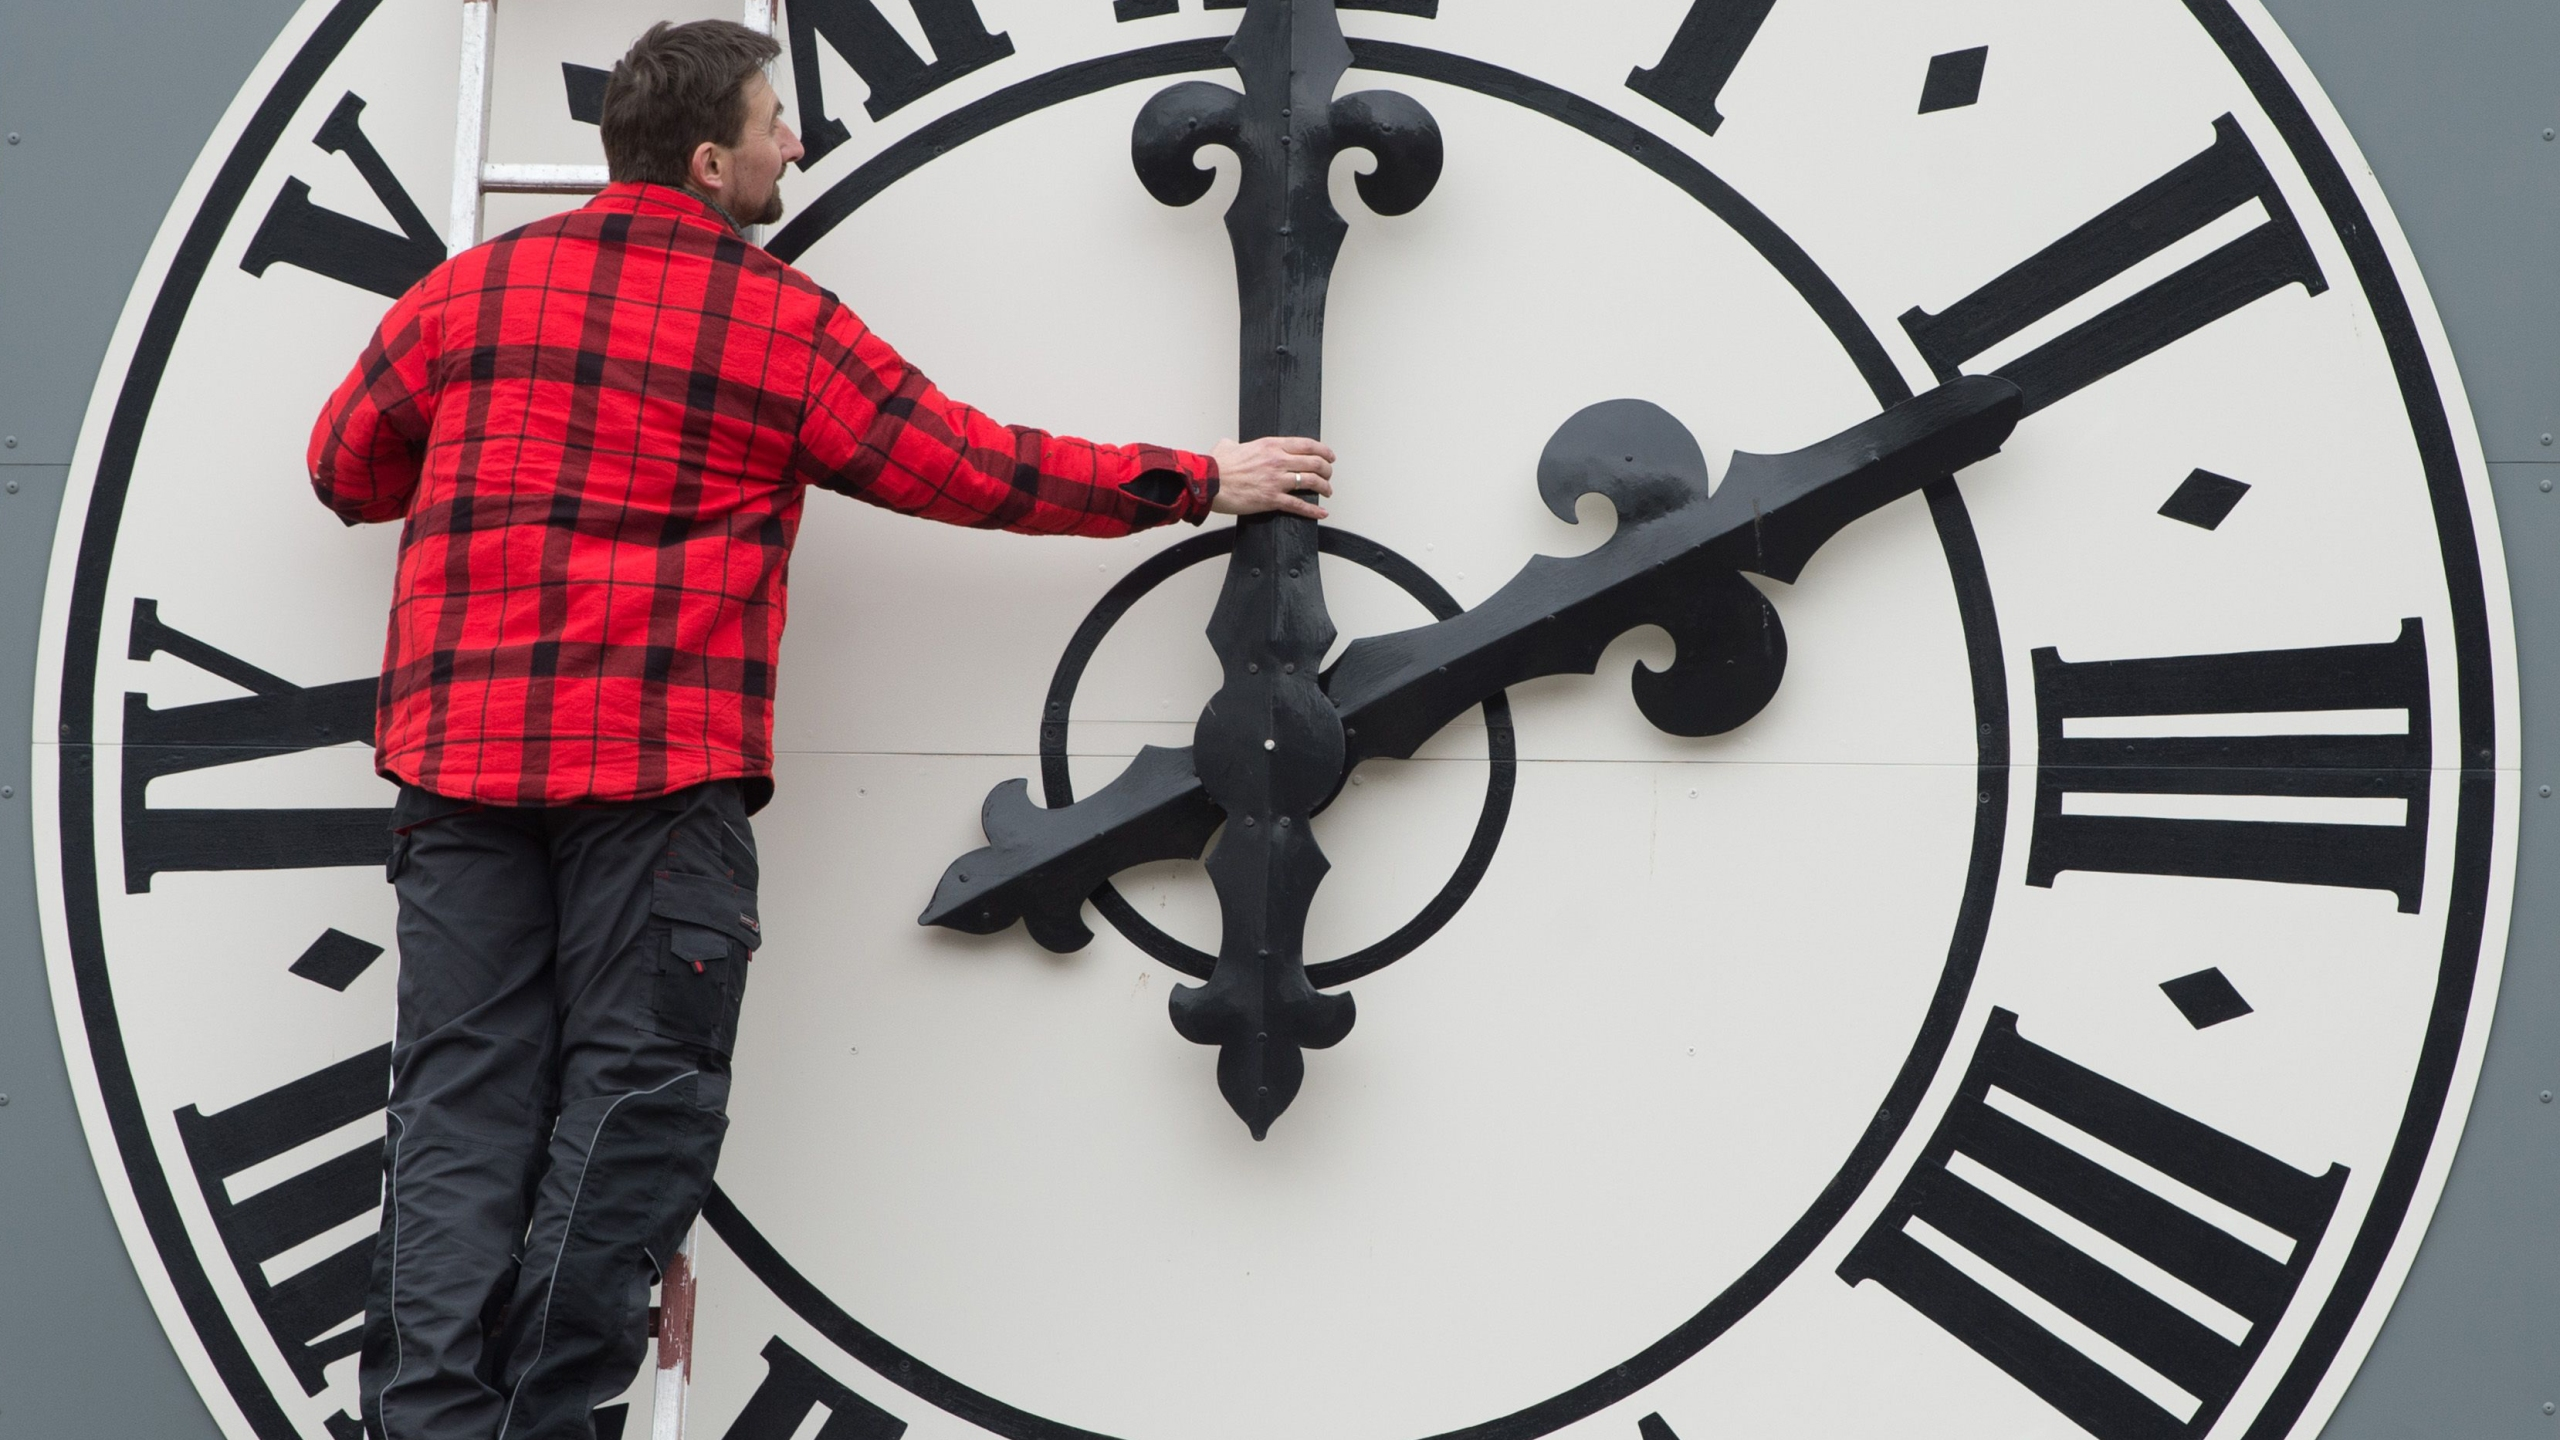 Picture taken on March 23, 2018 shows a technician working on the clock of the Lukaskirche Church in Dresden, eastern Germany. (Credit: SEBASTIAN KAHNERT/AFP/Getty Images)